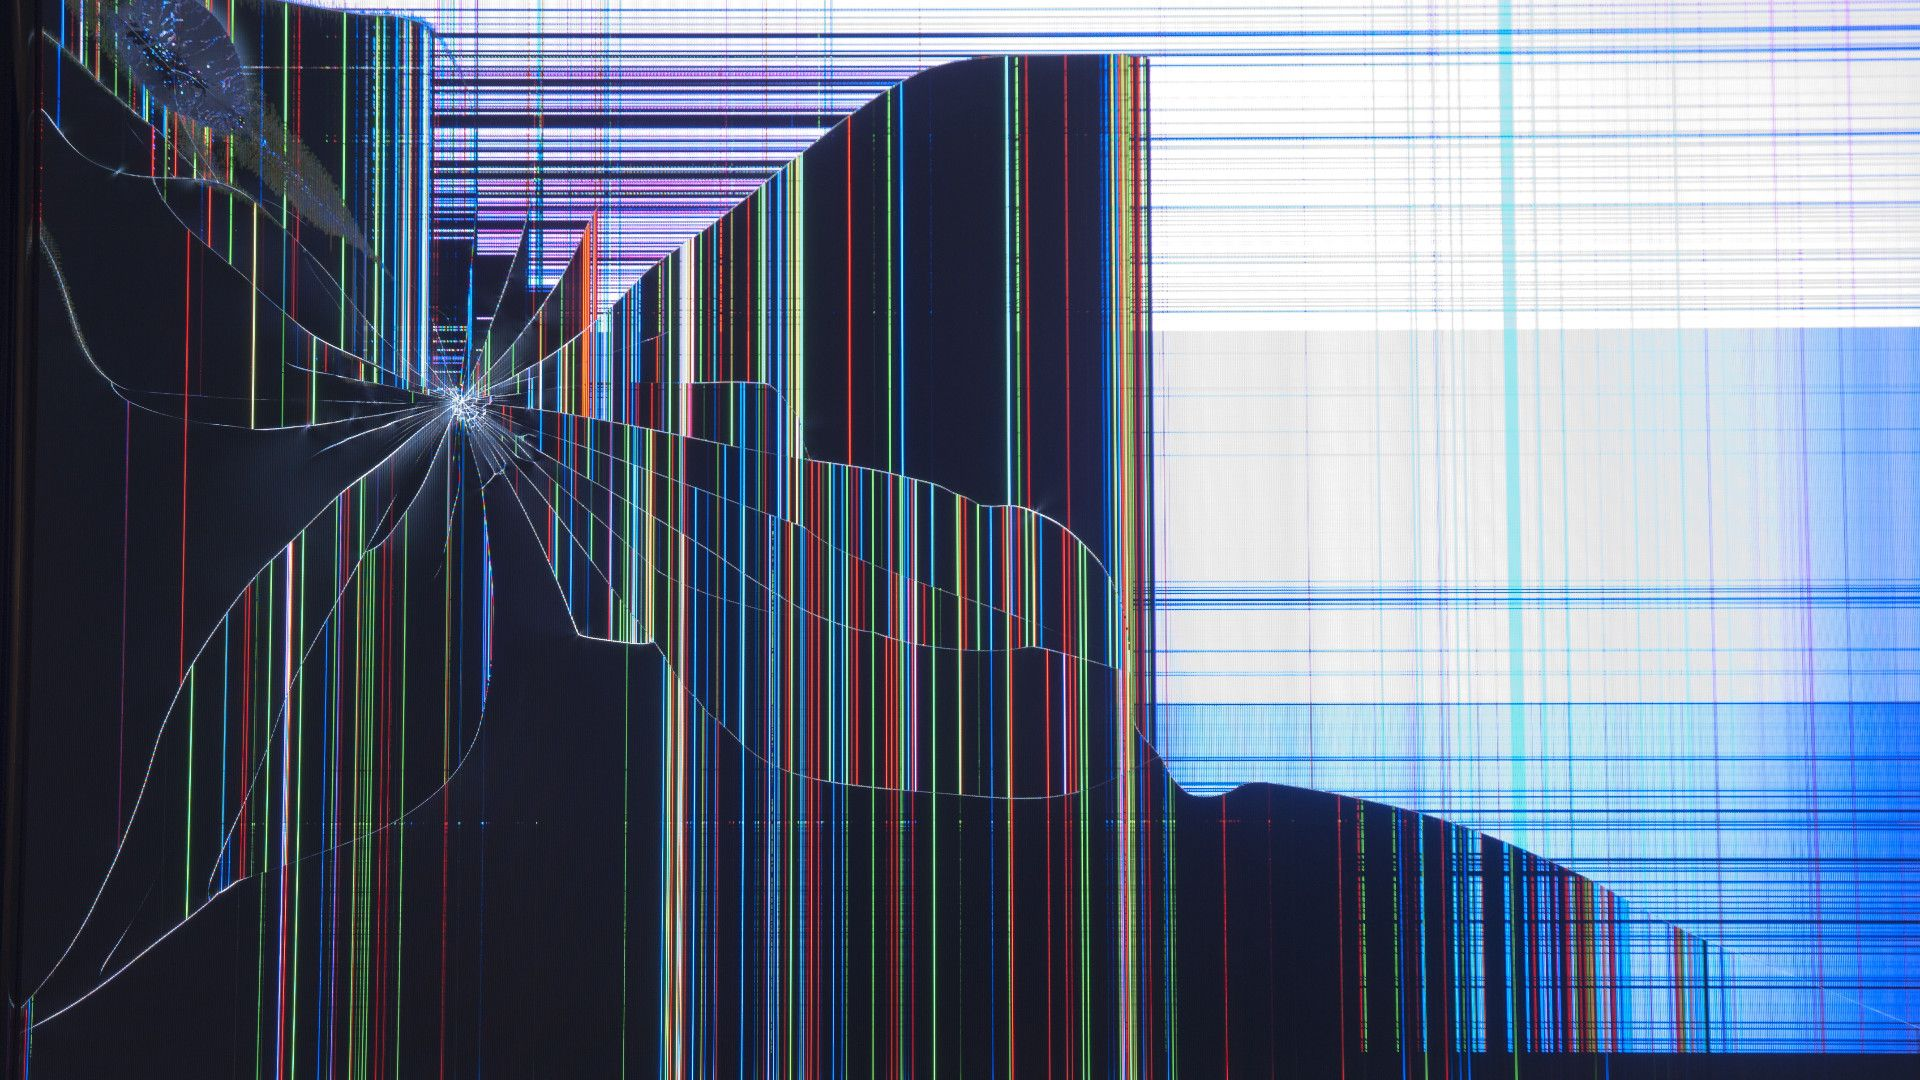 Broken tv screen 35 images dodowallpaper - Ultra high def tv prank ...